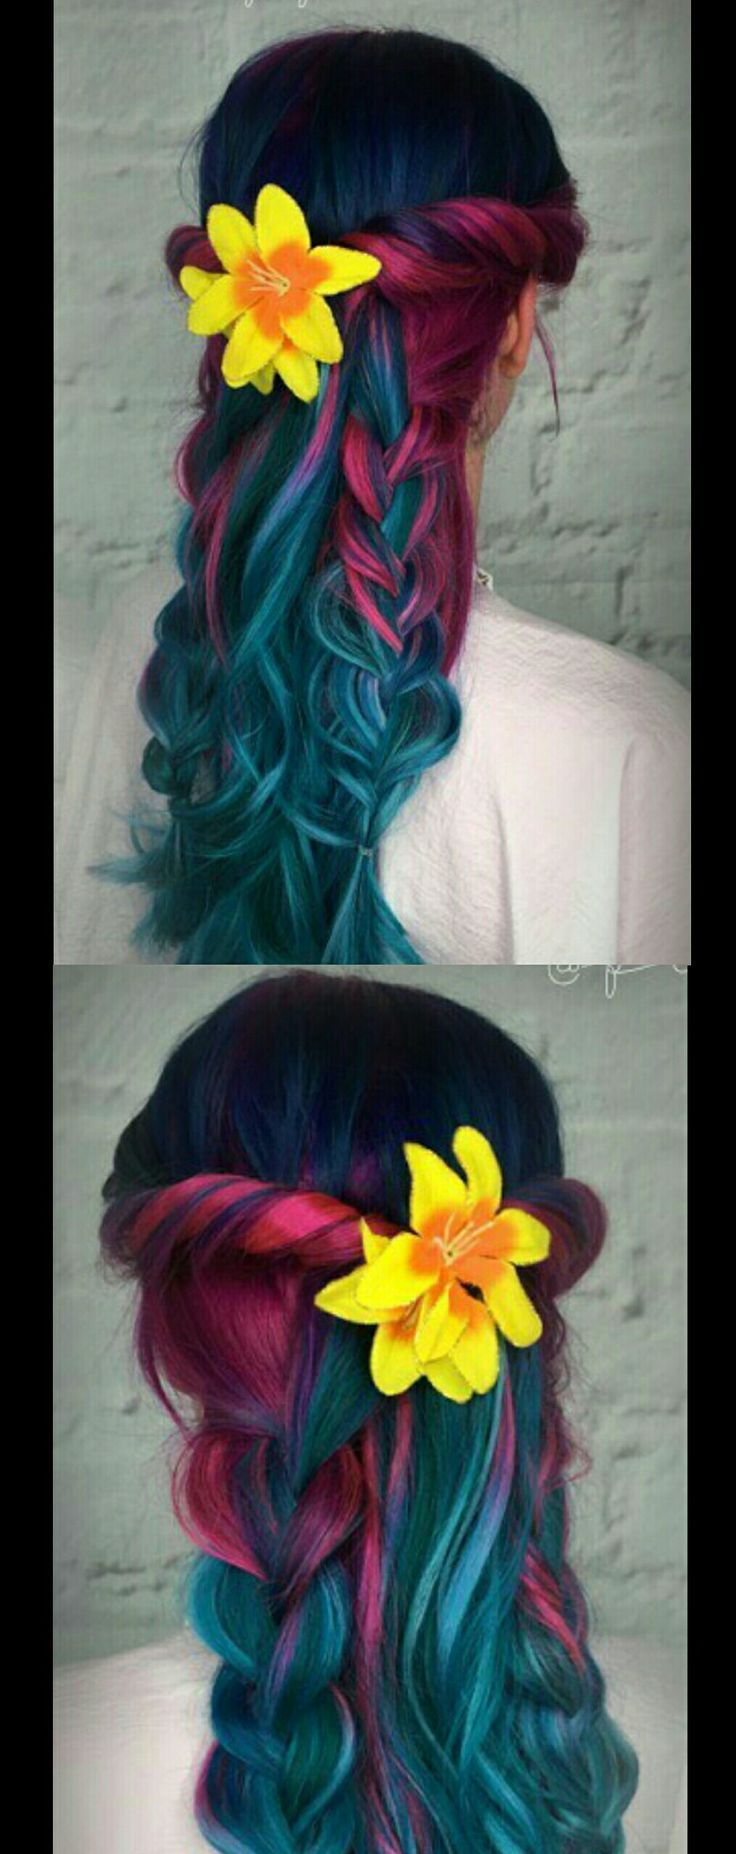 Pink turquoise braided dyed hair color @pinupjordan